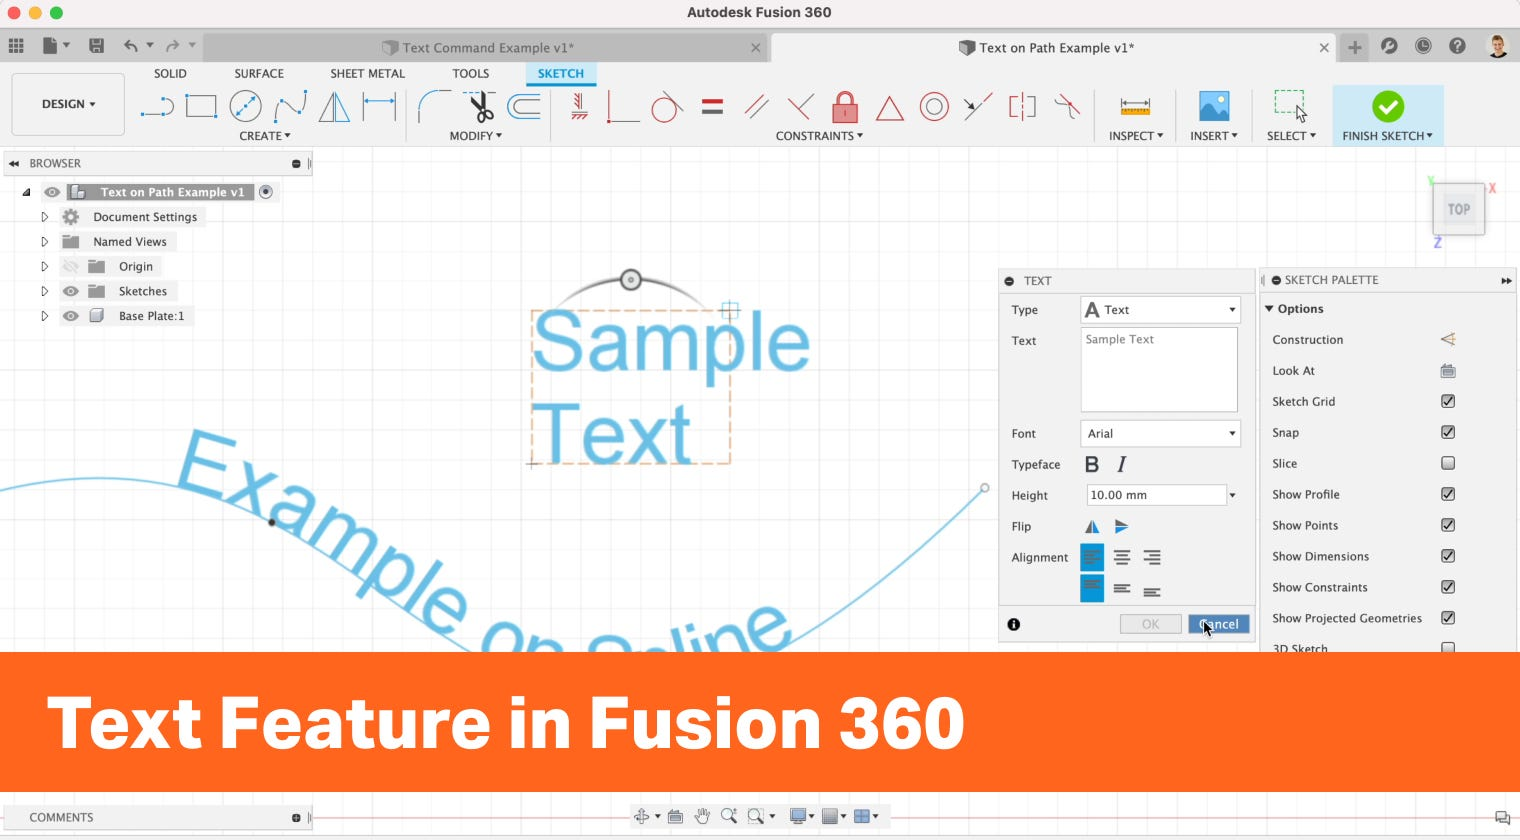 Text Feature in Fusion 360